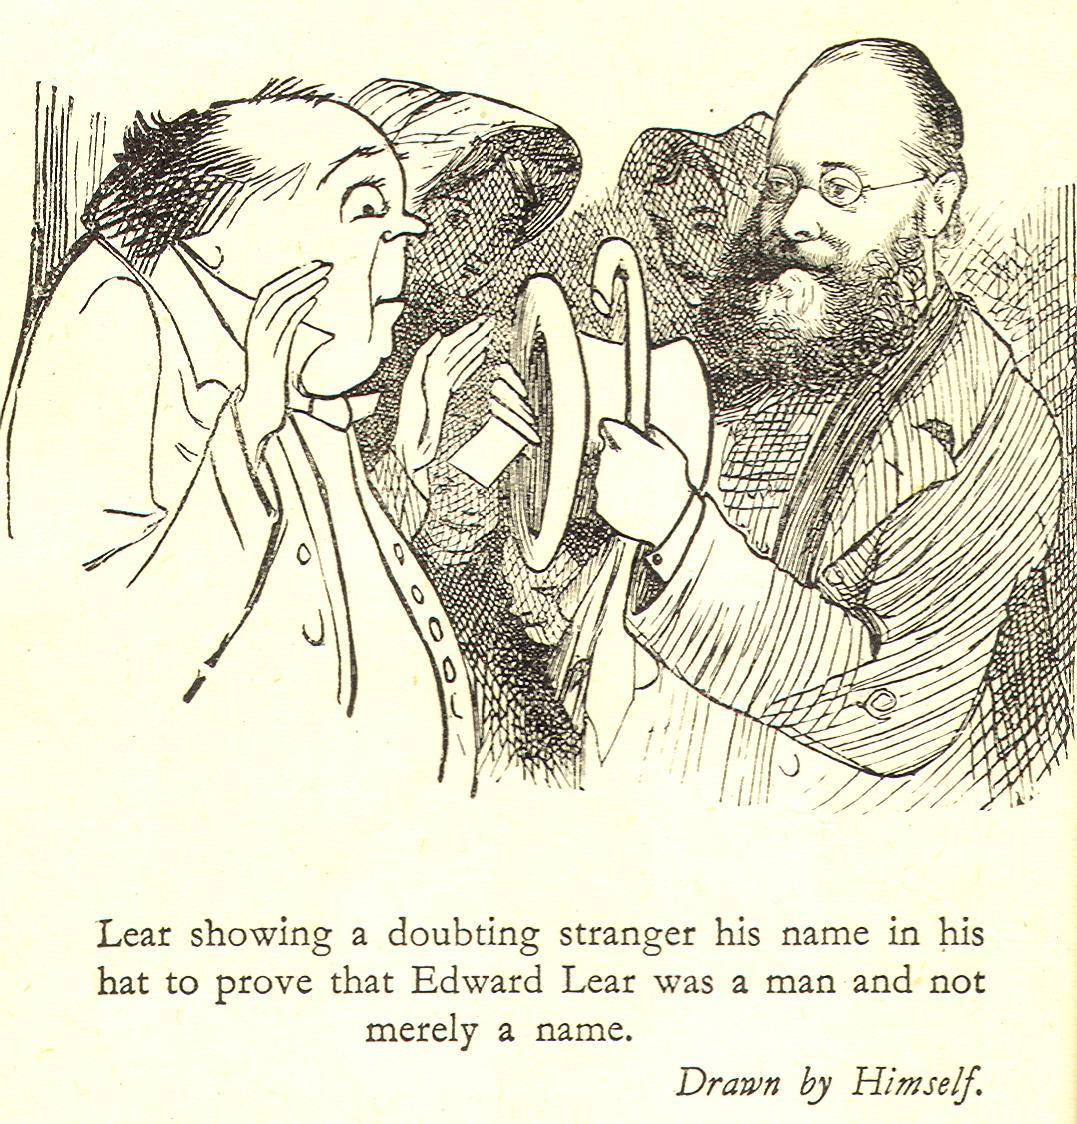 Nonsense Poetry: Edward Lear's Contribution To Historical Children's Literature